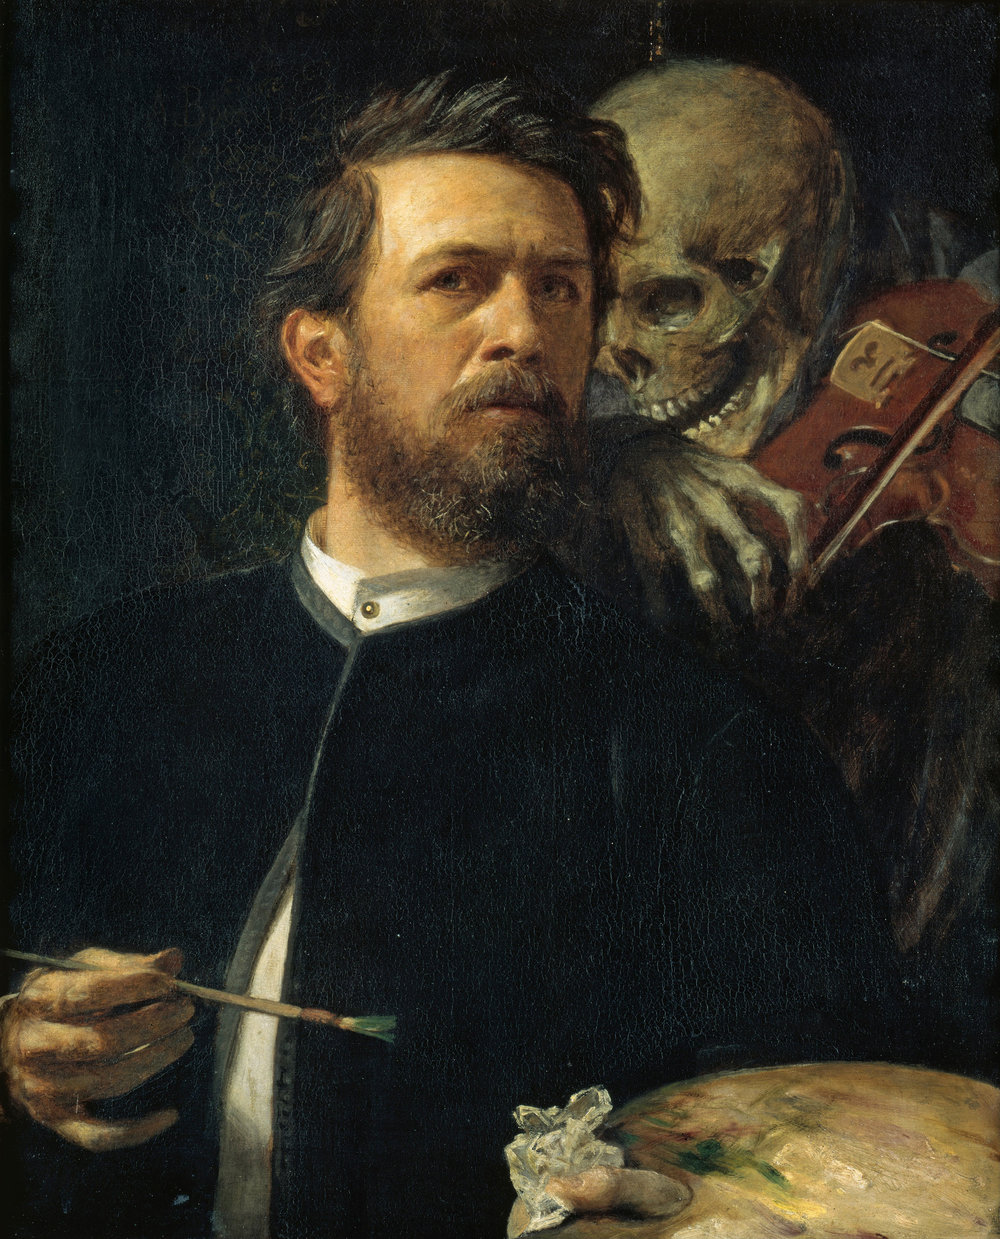 Portrait of Arnold Böcklin - the inspiration behind the second movement.